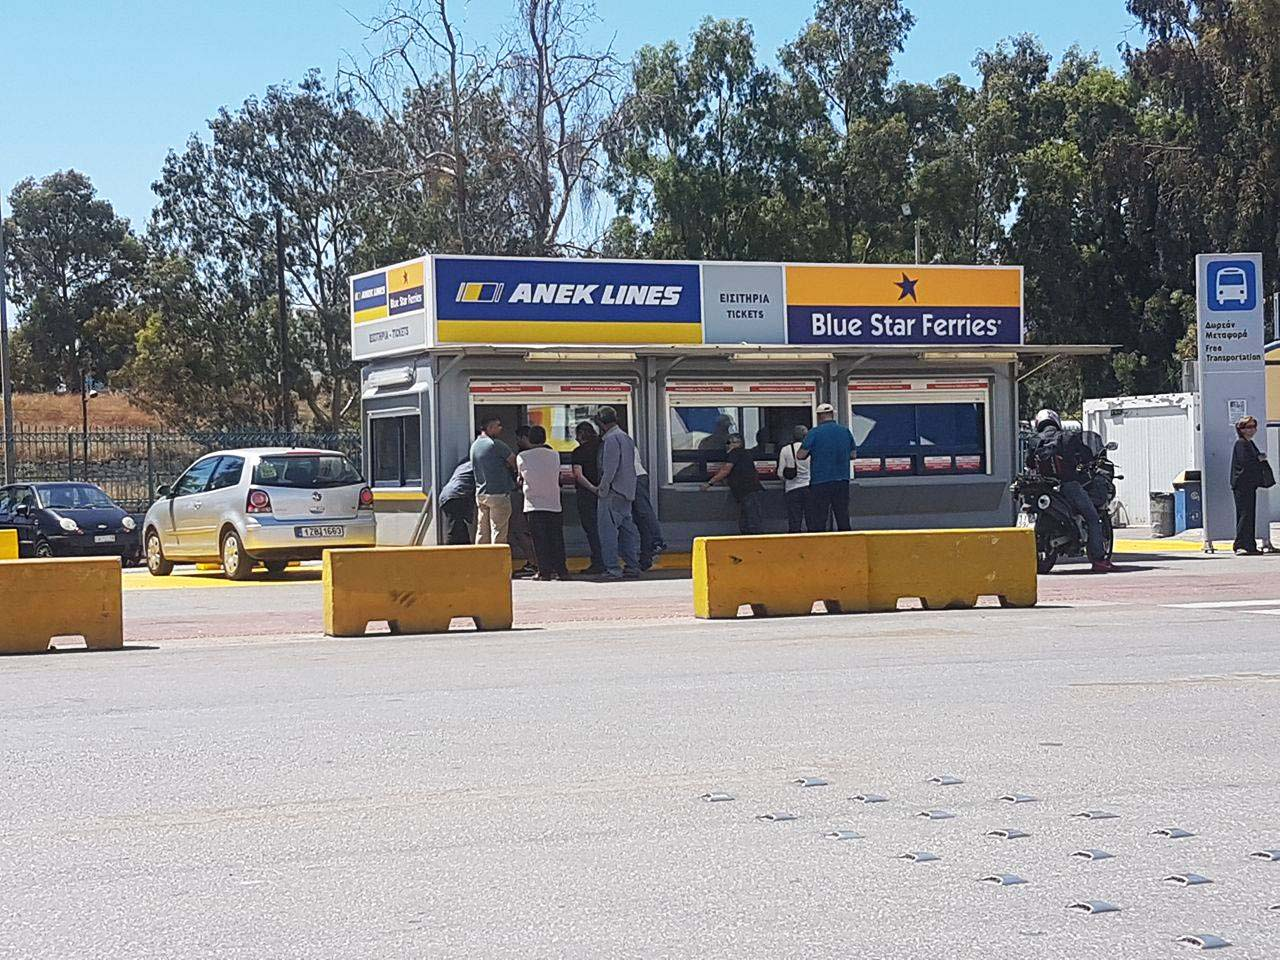 ANEK Lines - Blue Star Ferries - Port Ticketing Booth (Gate E3) - GTP